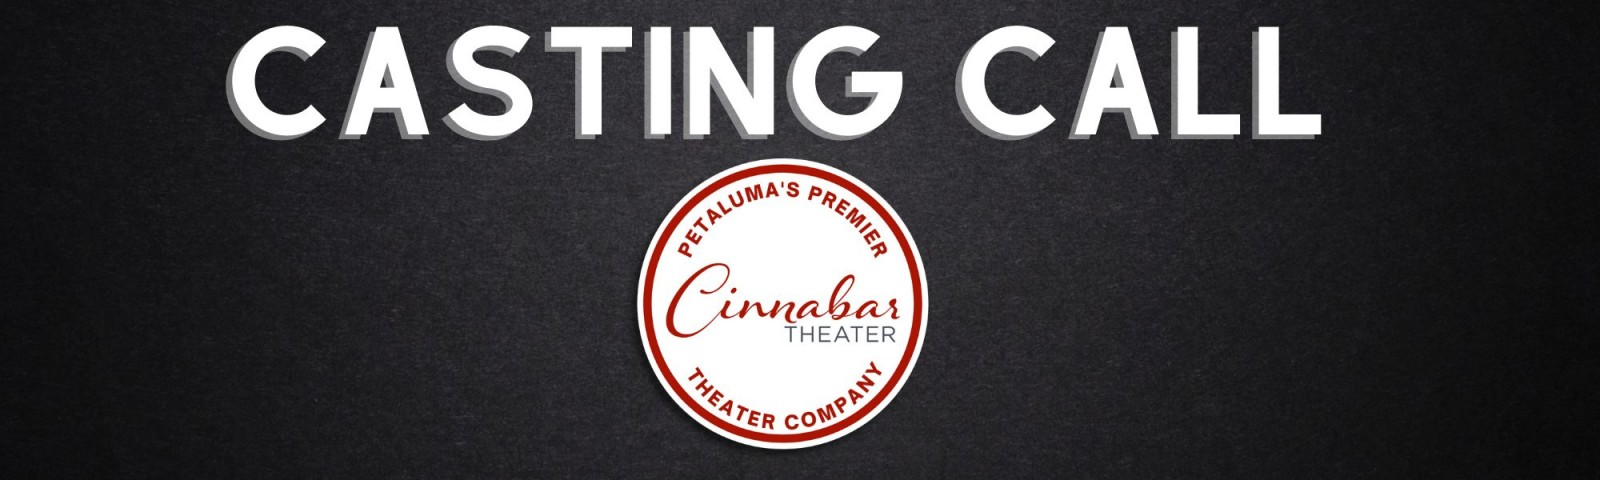 Casting Call (Banner)